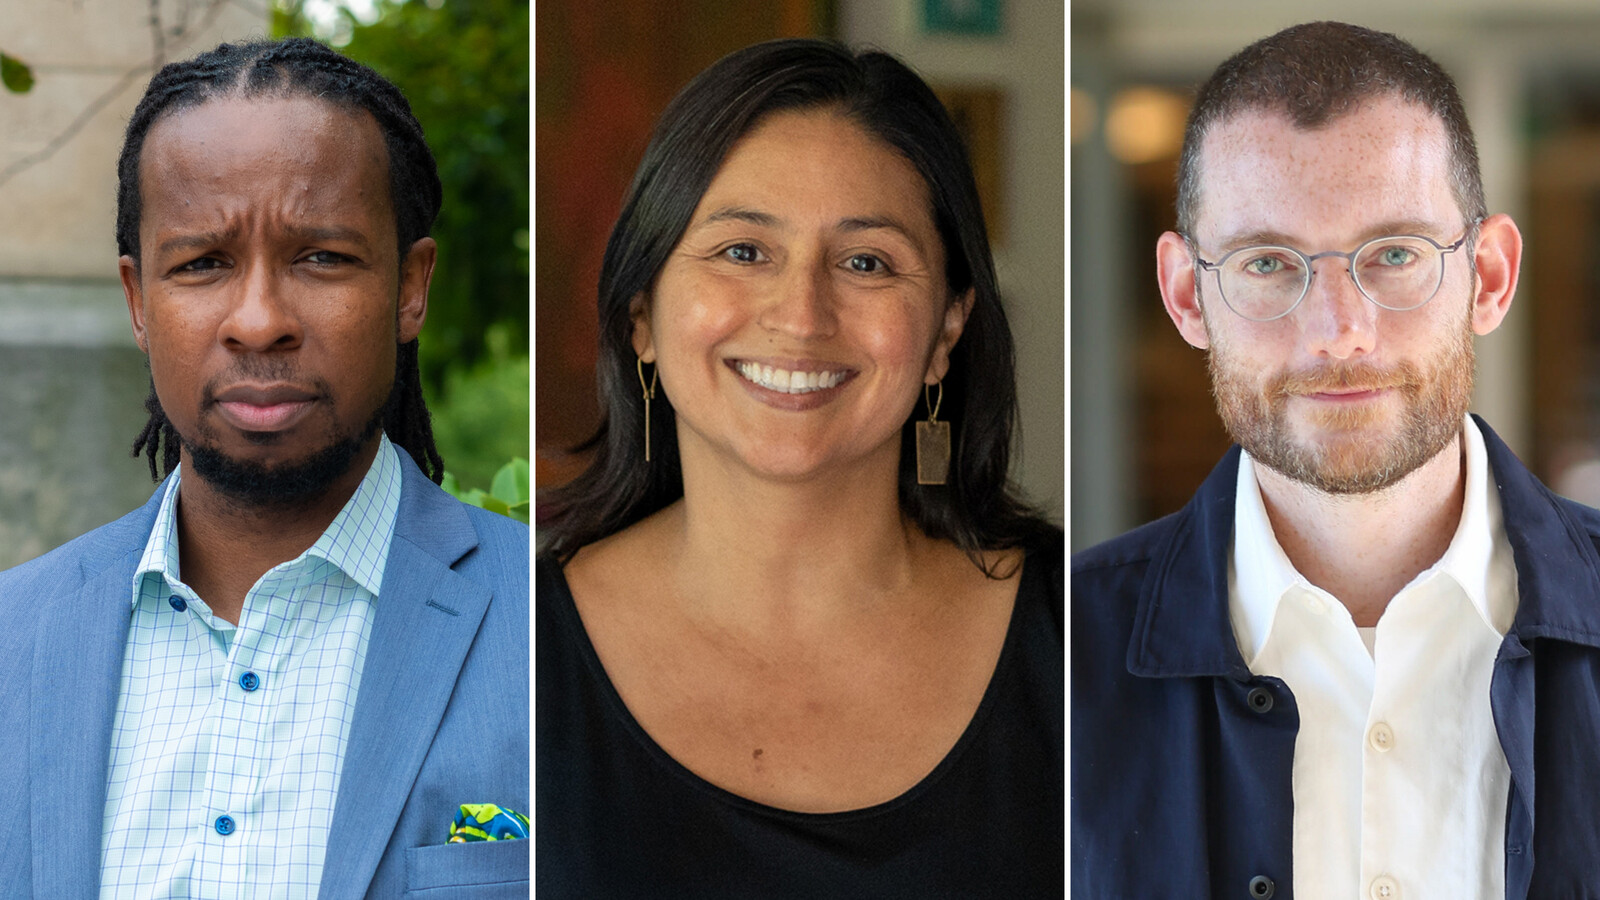 An anti-racist author, a documentary filmmaker and a computational virologist are among the 2021 MacArthur Foundation 'genius grant' winners